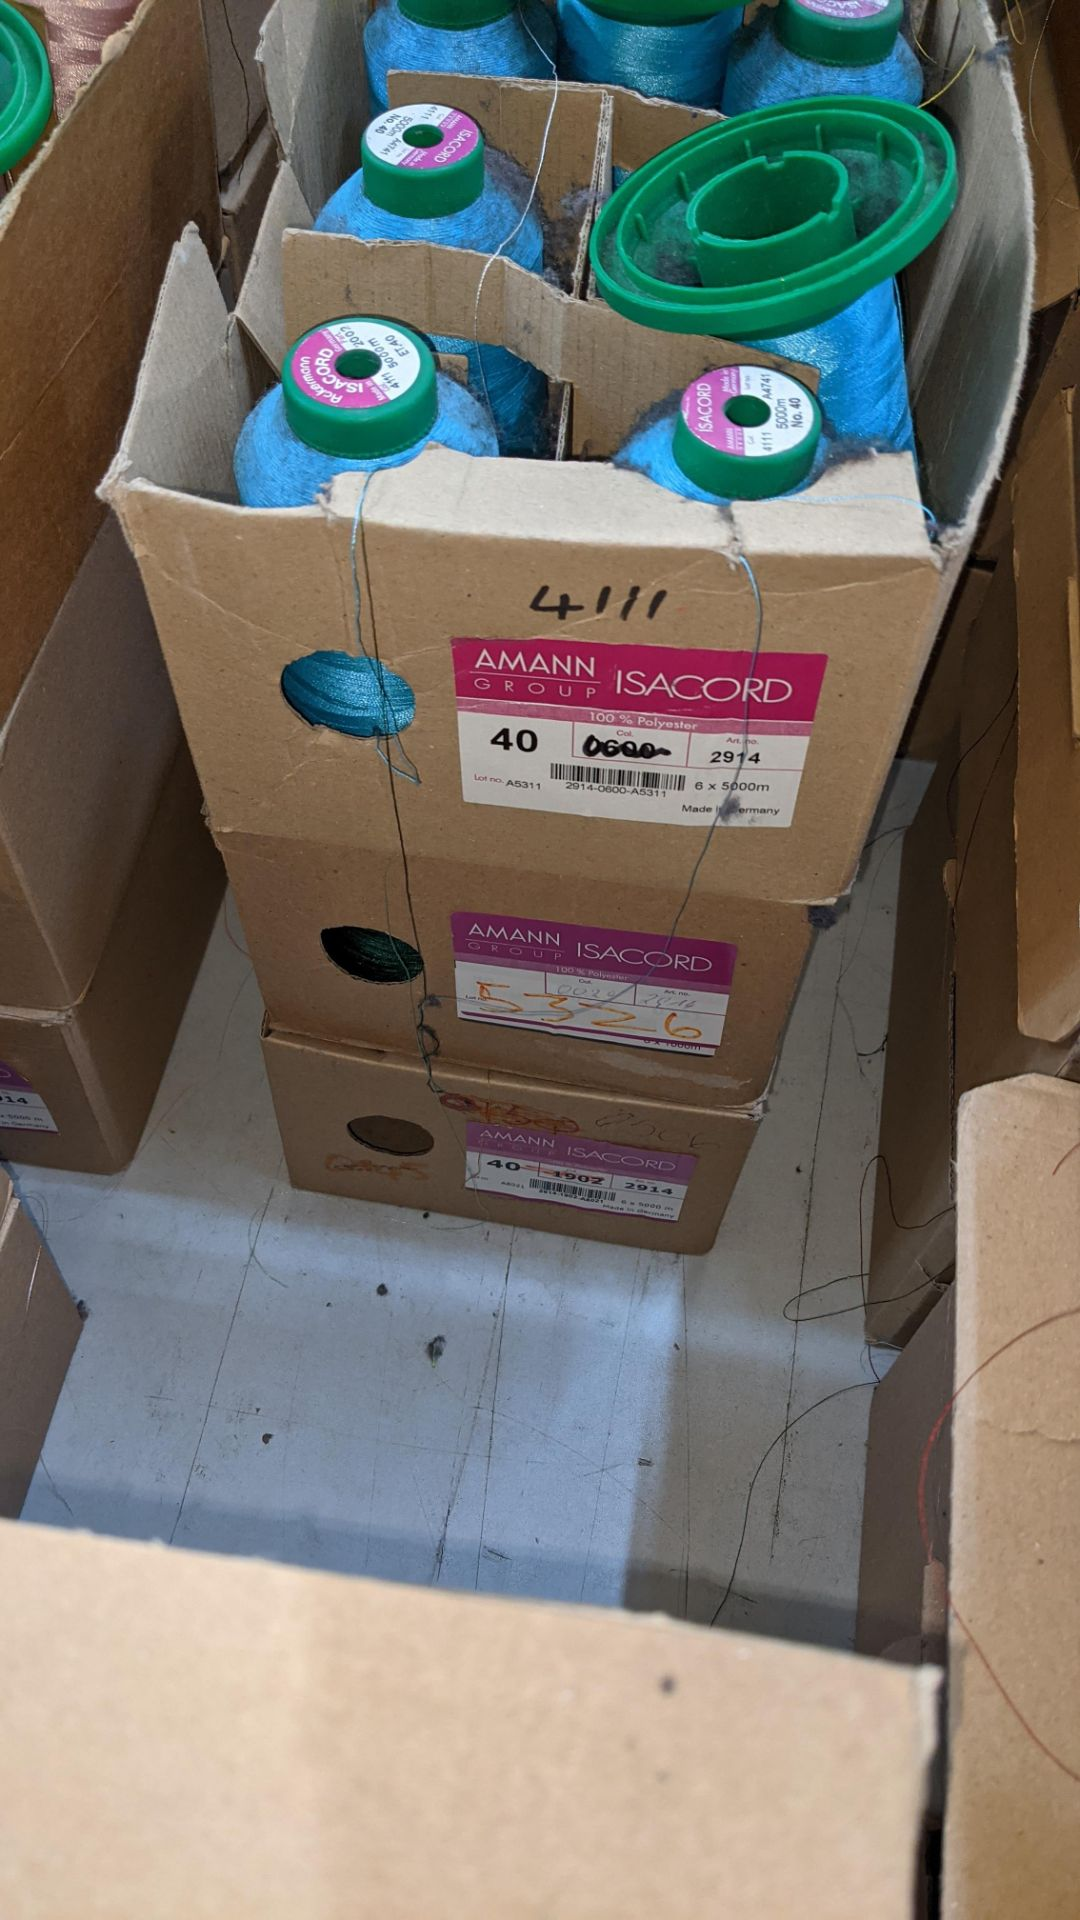 12 boxes of Ackermann Isacord (40) polyester thread - Image 6 of 7